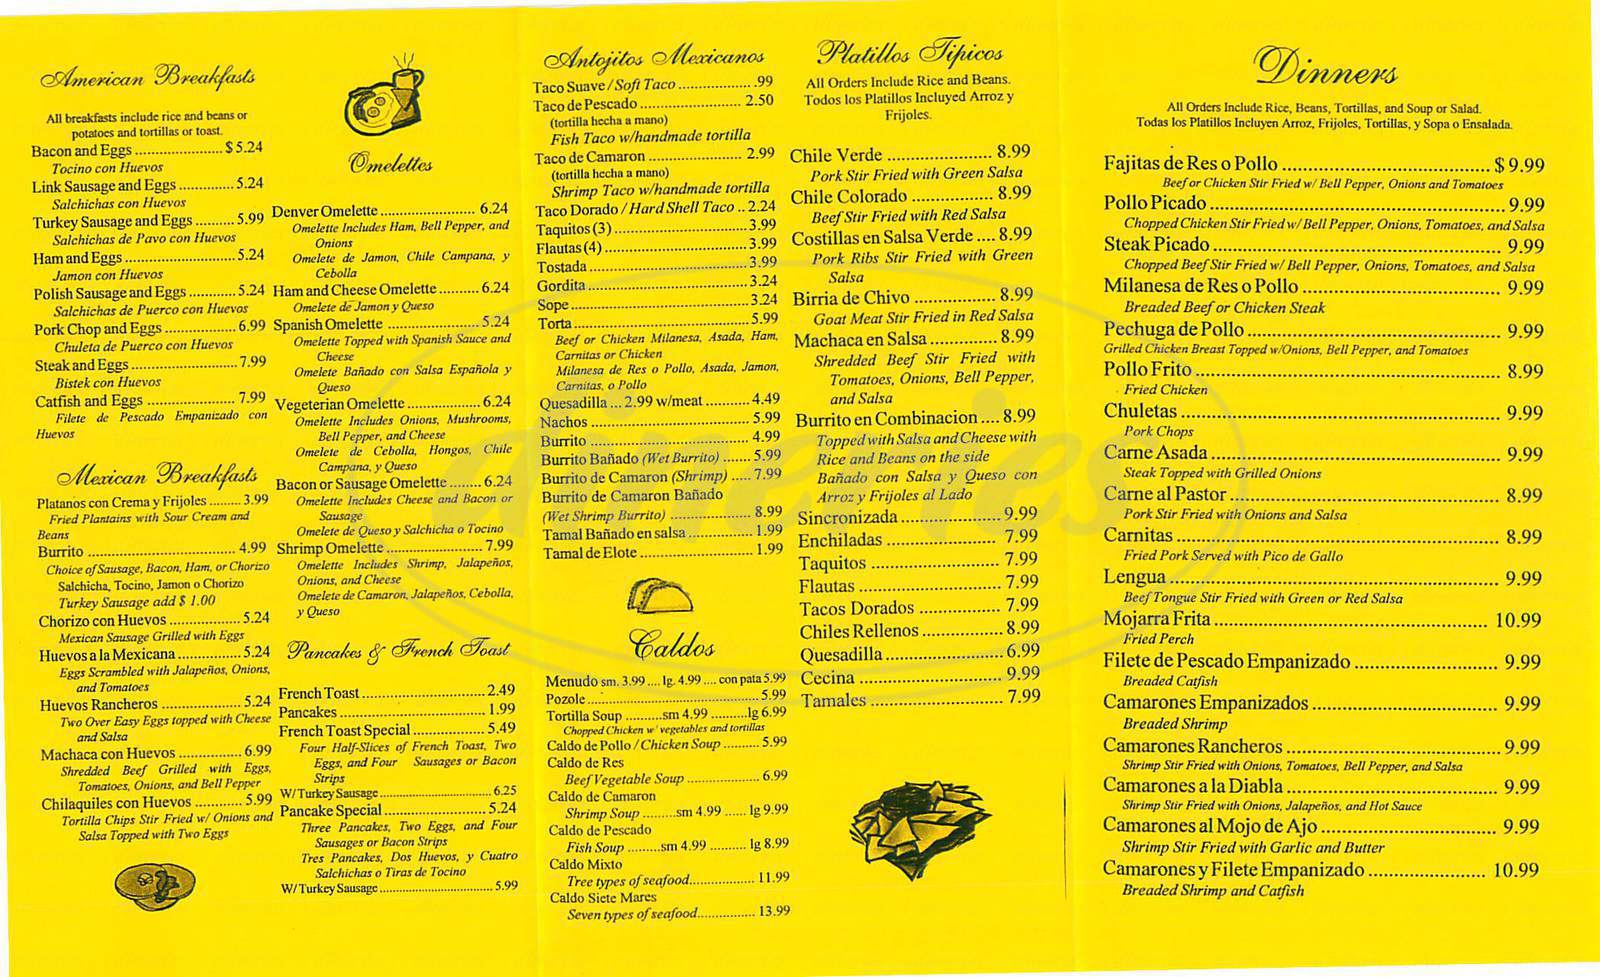 menu for Tonnys Restaurant